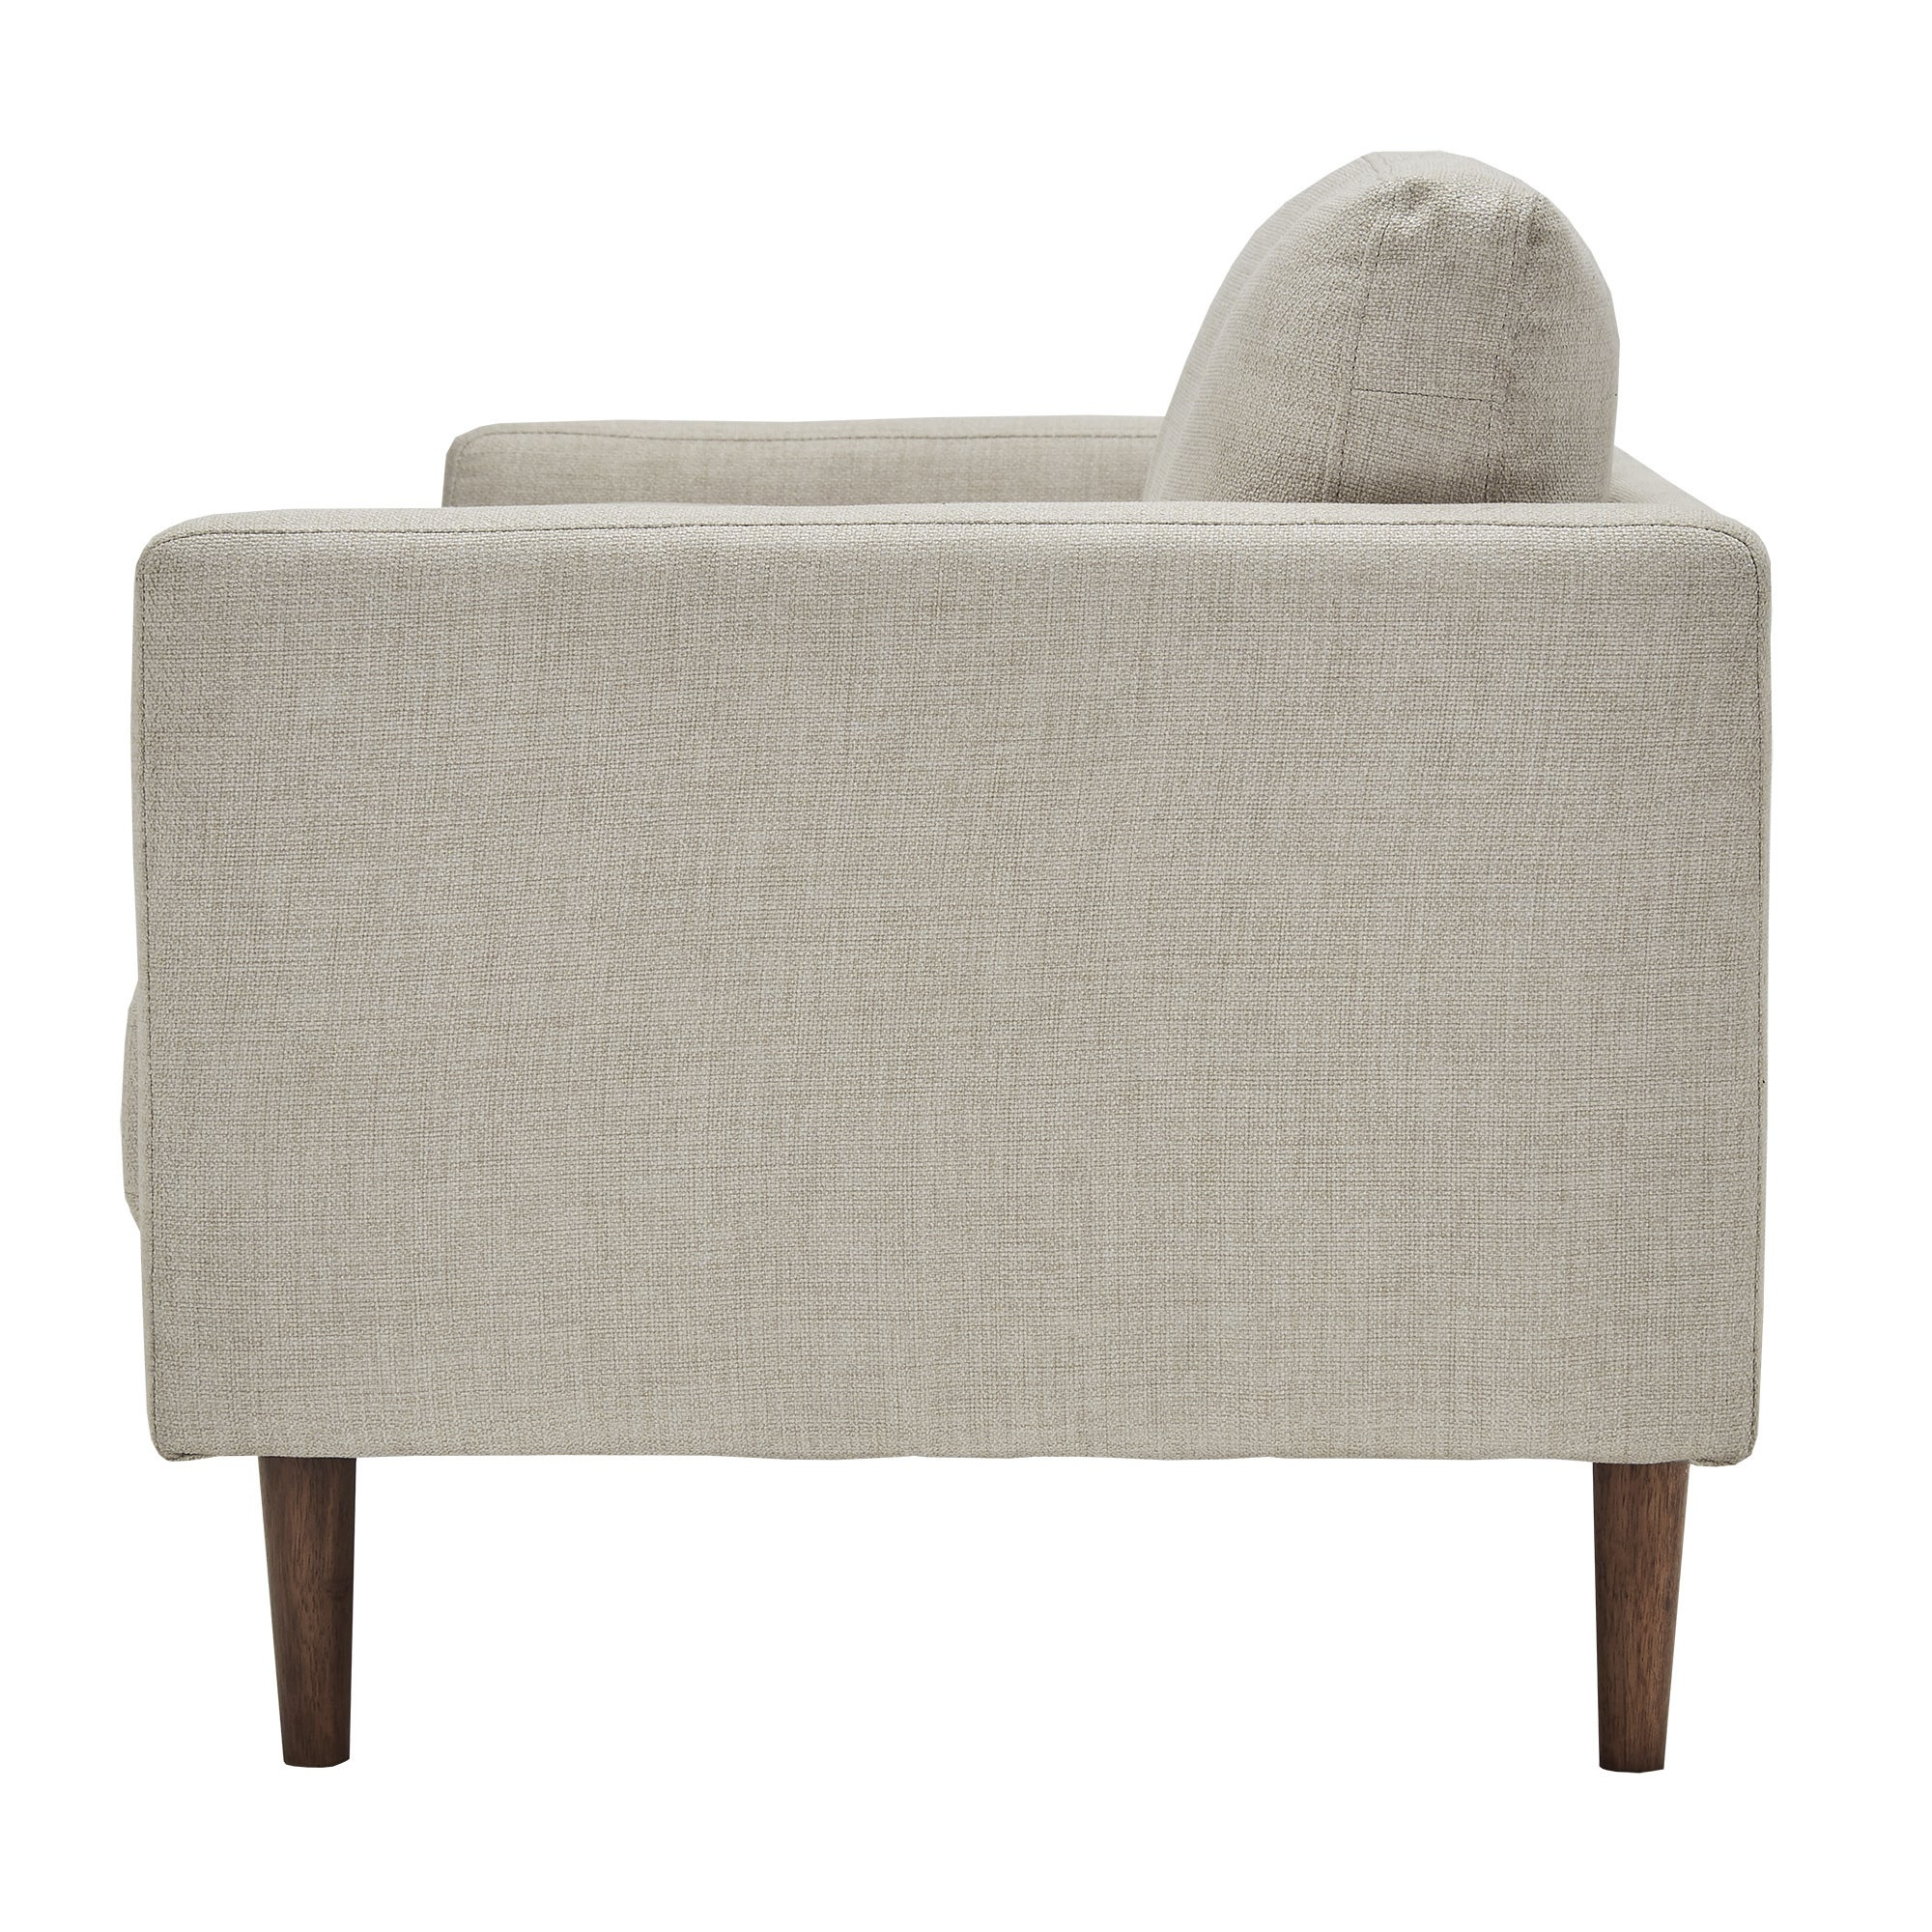 Oana Oatmeal Mid-Century Tapered Leg Seating Collection with Pillows by  iNSPIRE Q Modern - Free Shipping Today - Overstock.com - 23053049